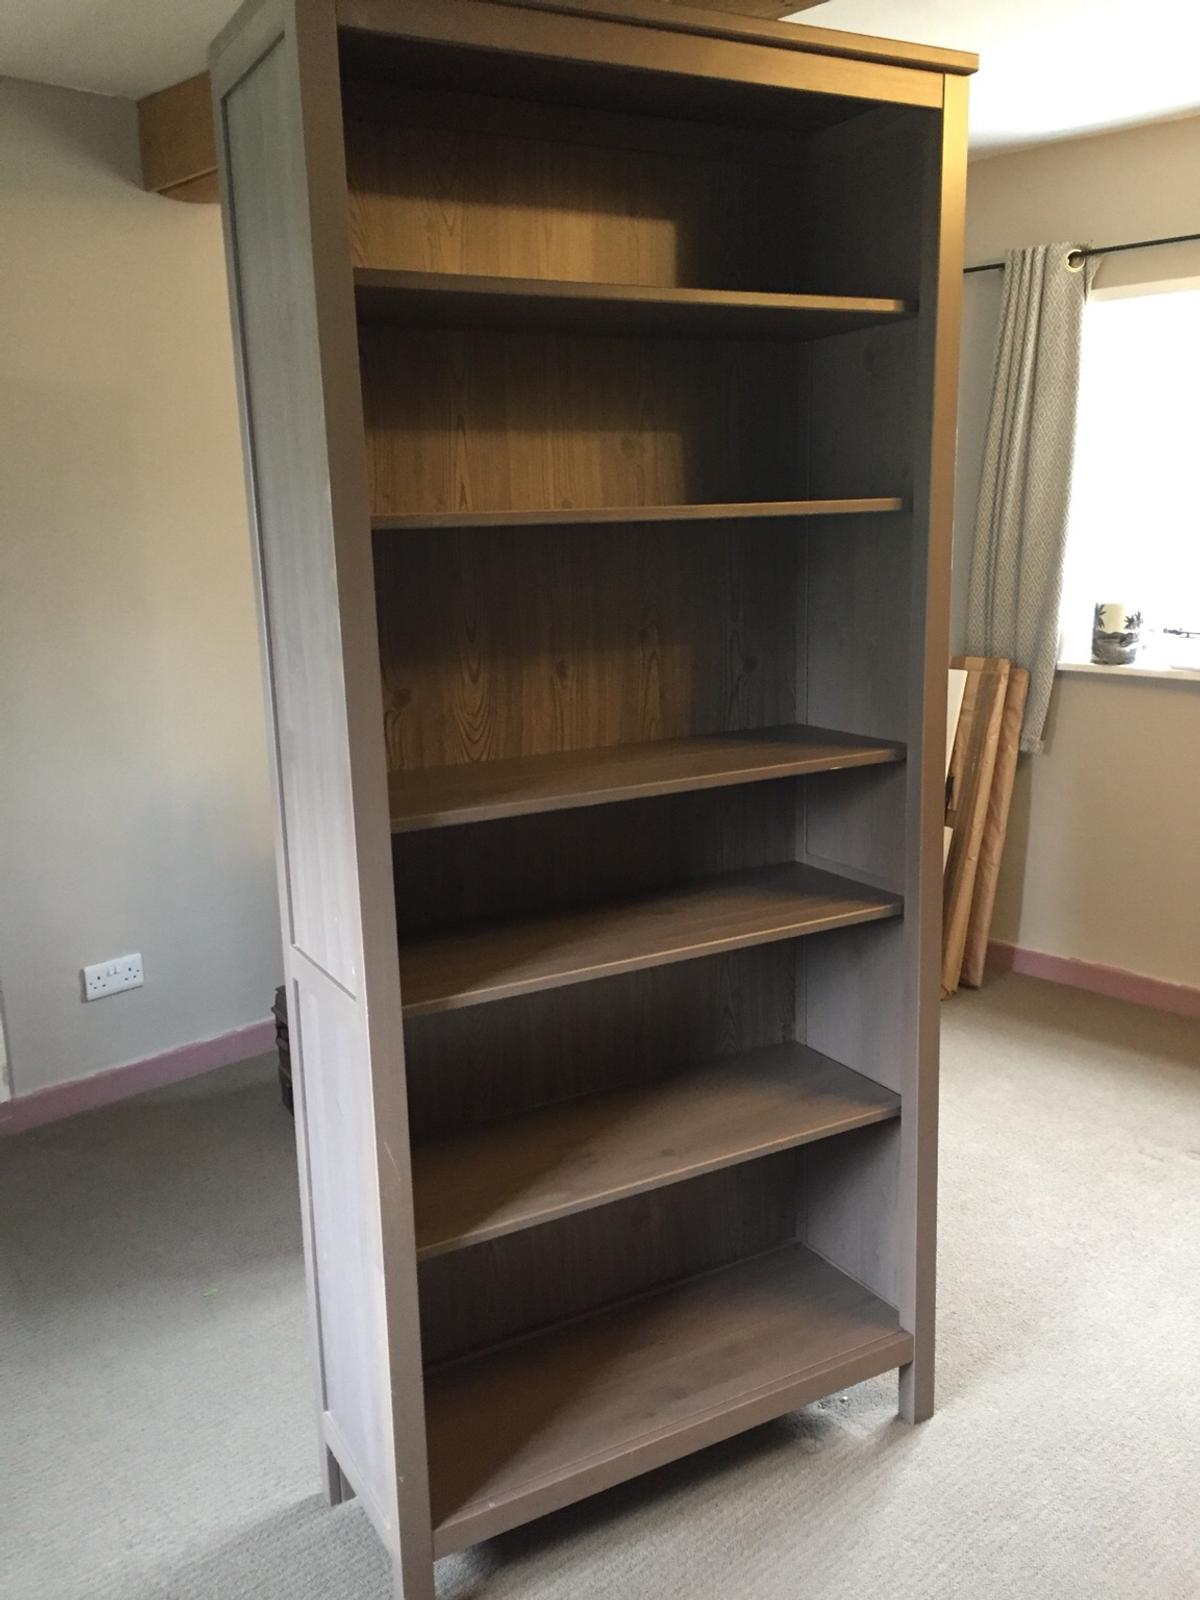 Ikea Hemnes Bookcase In Ox14 Oxfordshire For 30 00 For Sale Shpock